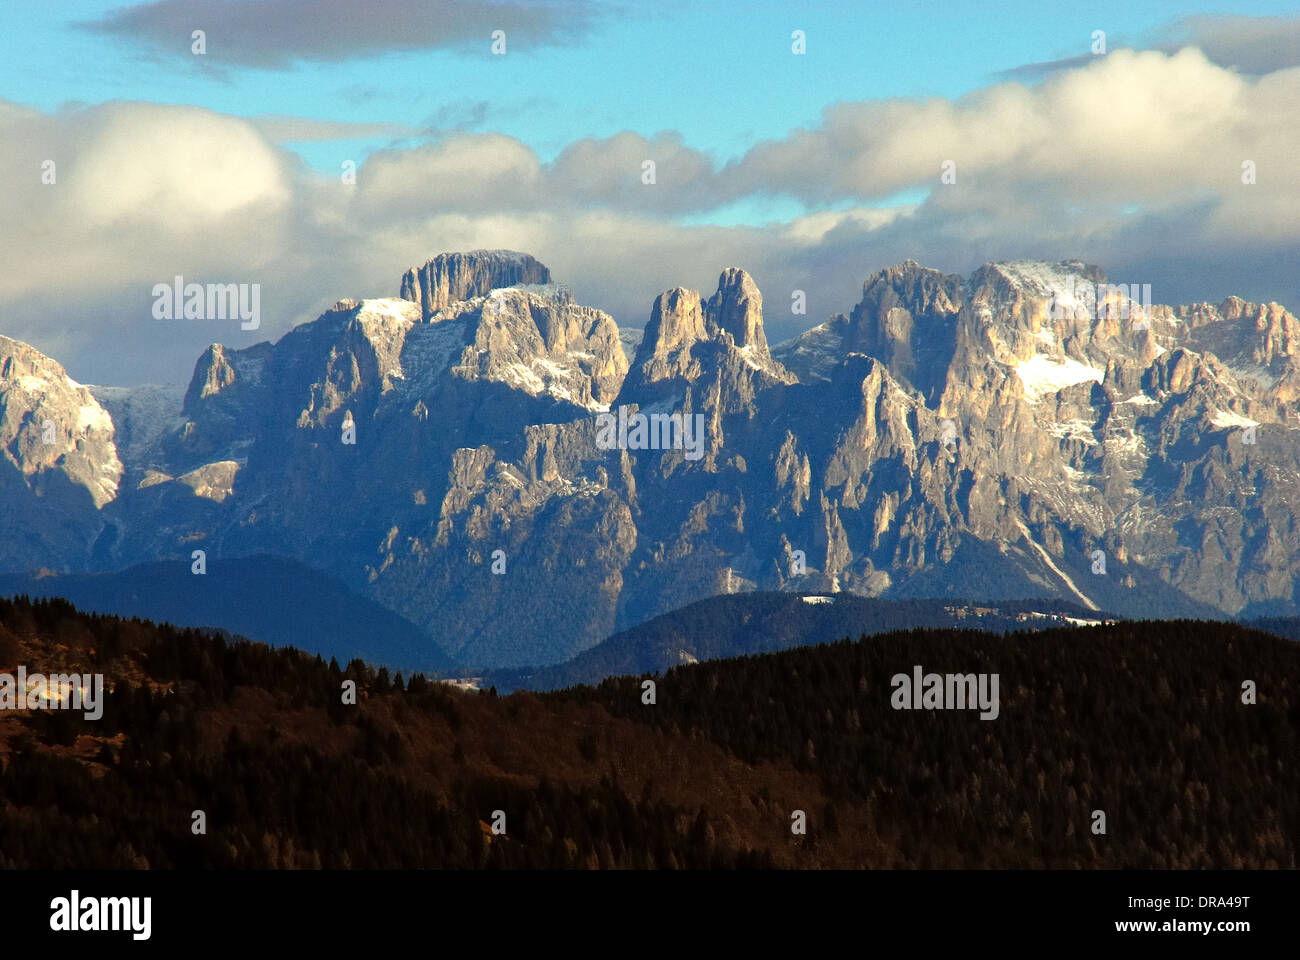 Southern Limestone Alps, Dolomites, the Pala group (Italian: Pale di San Martino, Dolomiti delle Pale or Gruppo Stock Photo